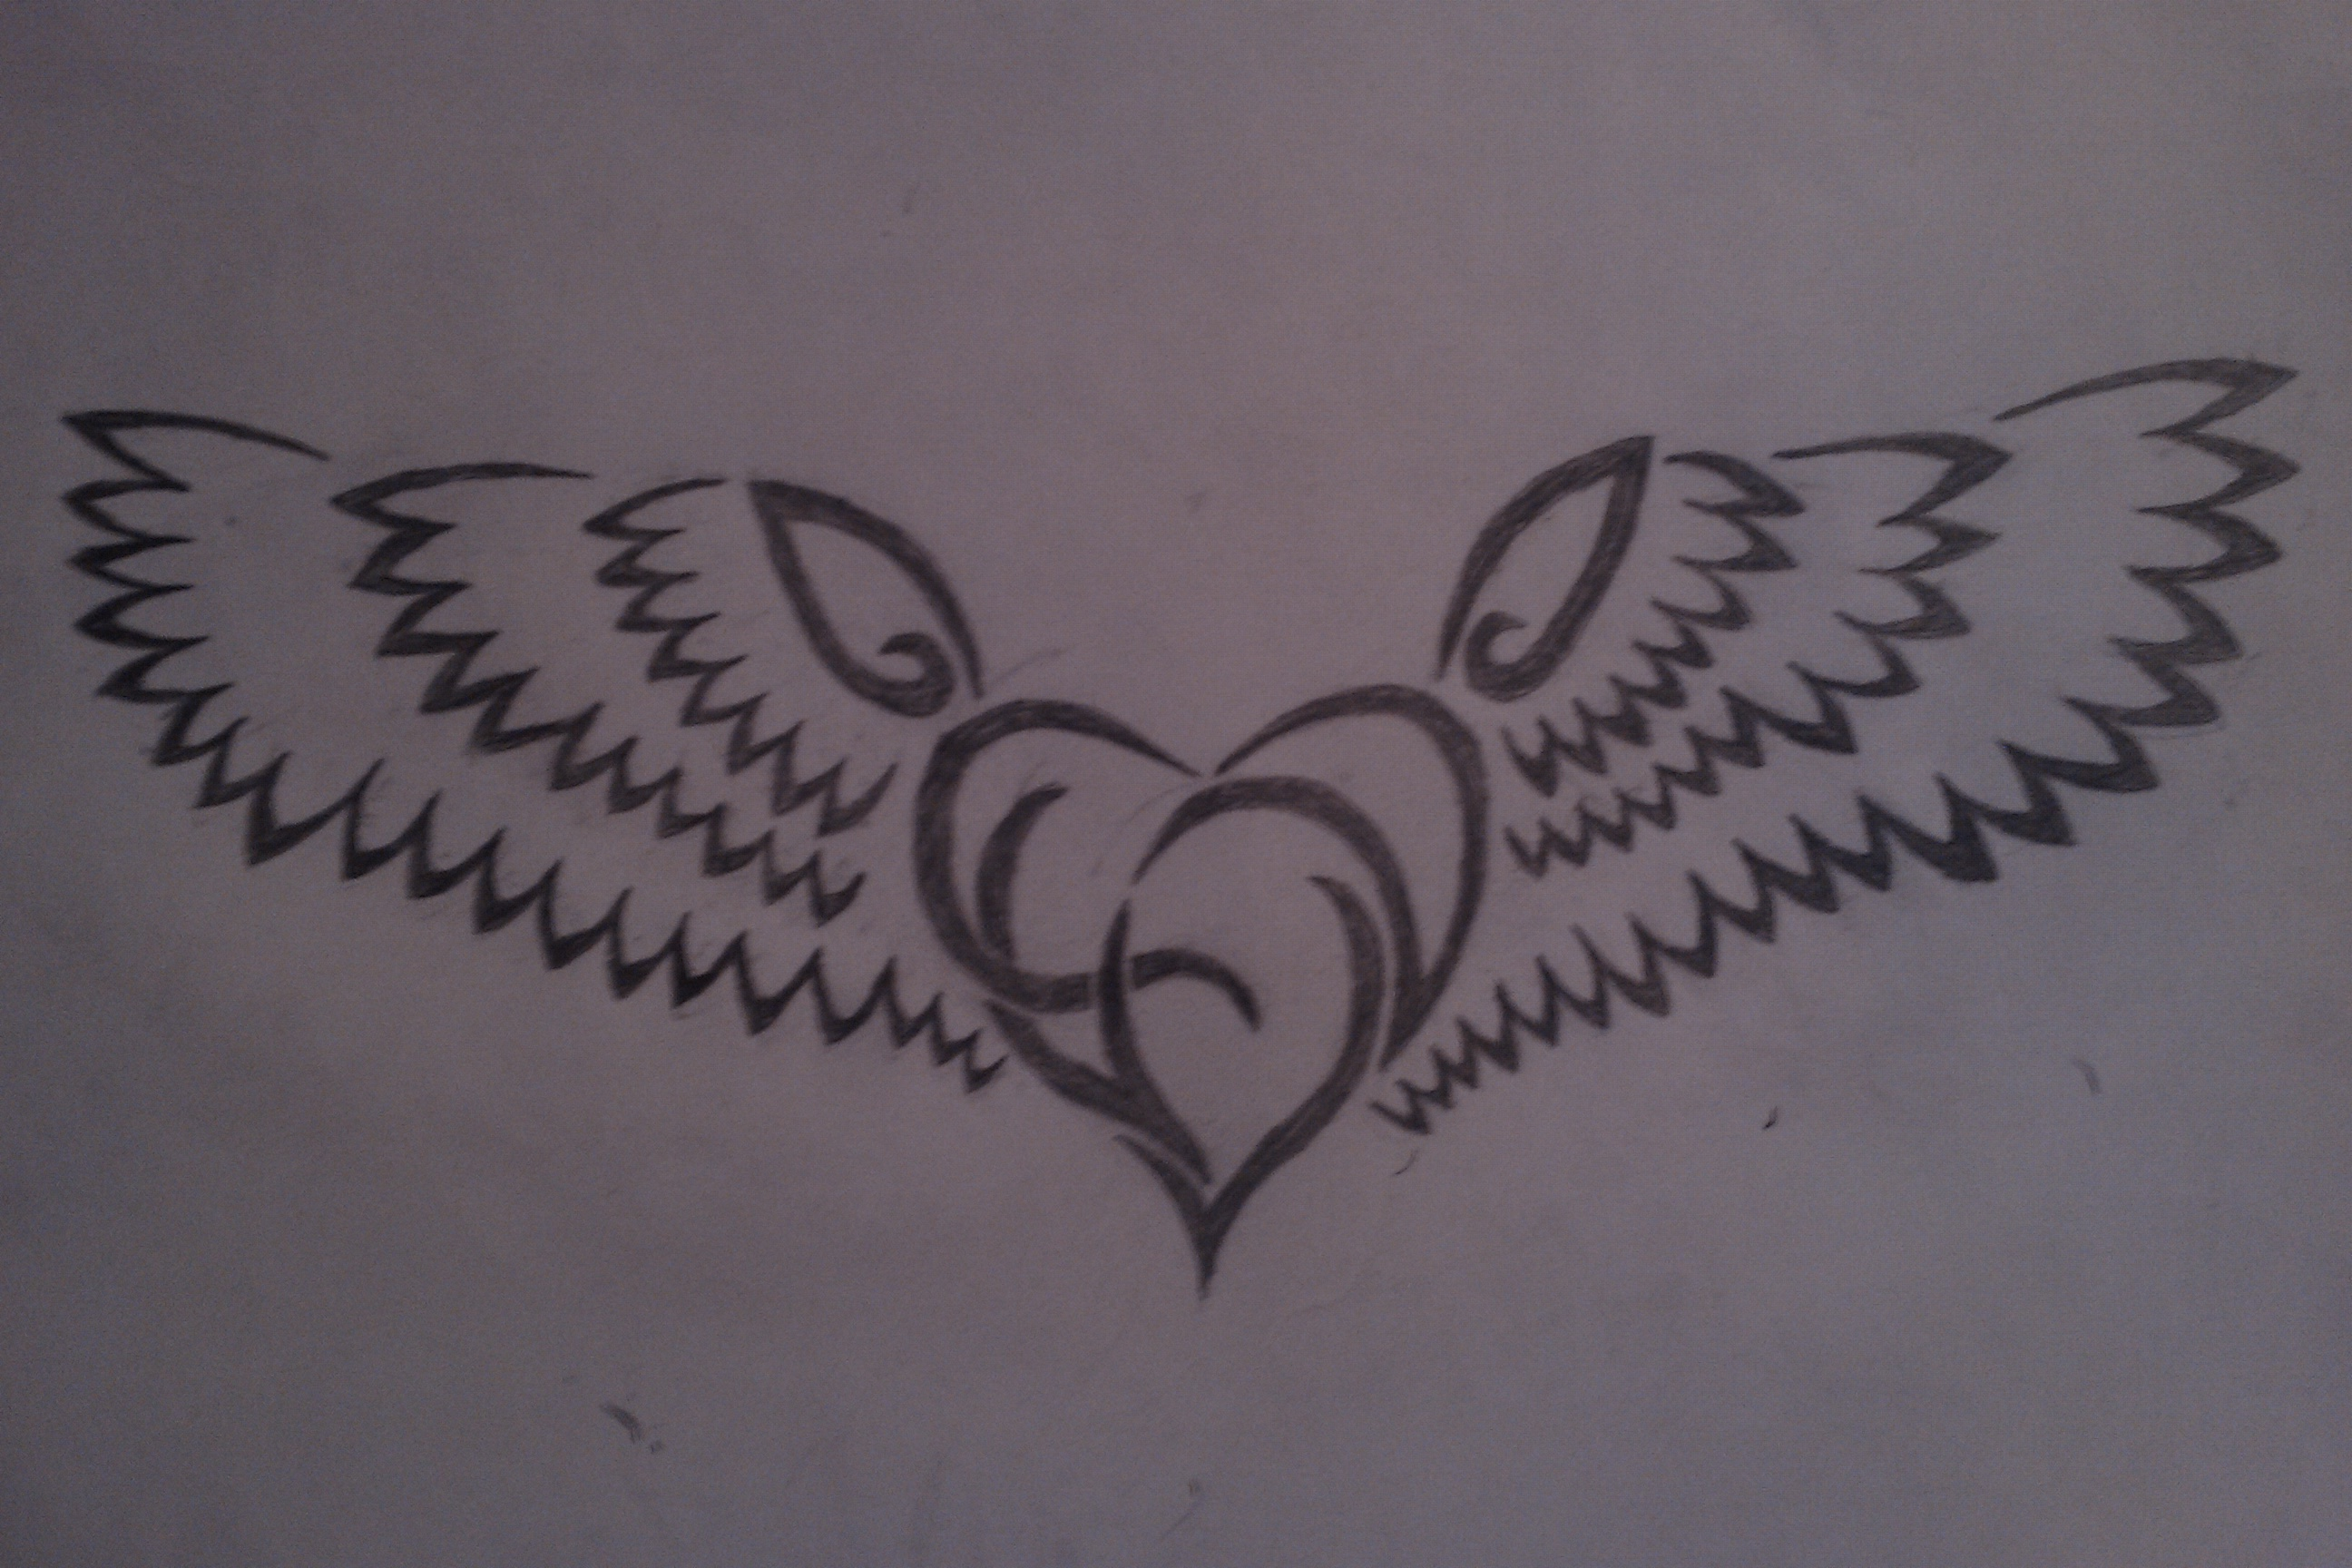 Tribal Heart with wings by Lirzz on DeviantArt